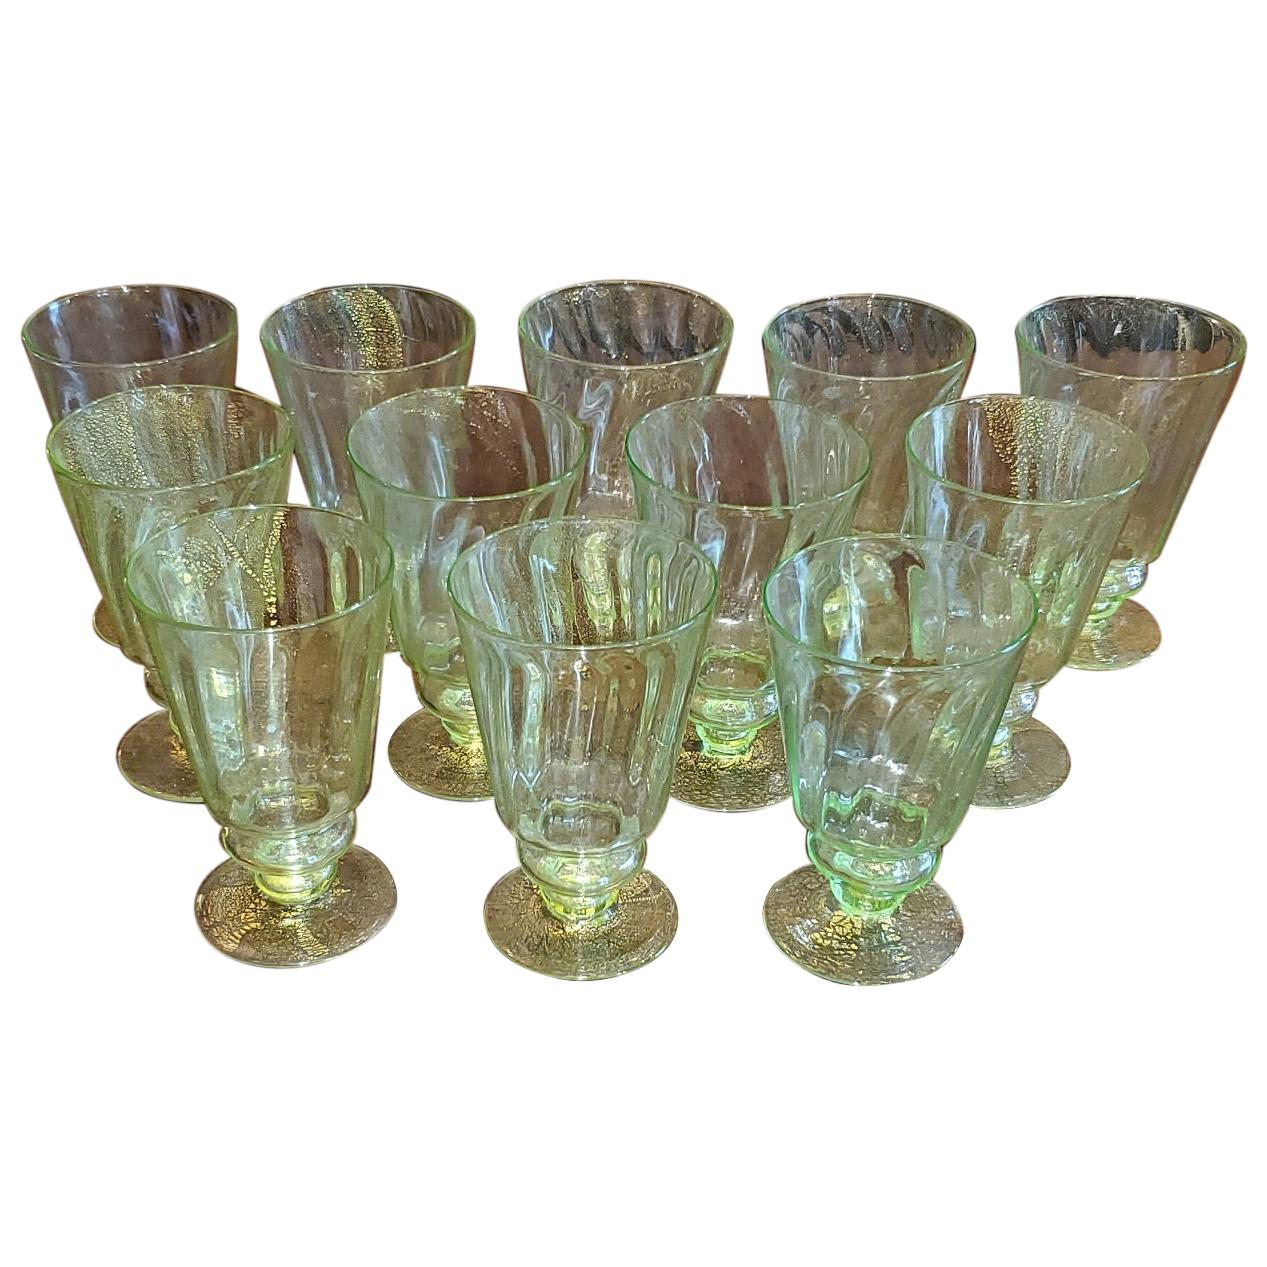 Set of 12 Salviati Venetian Green and Gold Flecked Beer or Water Glasses